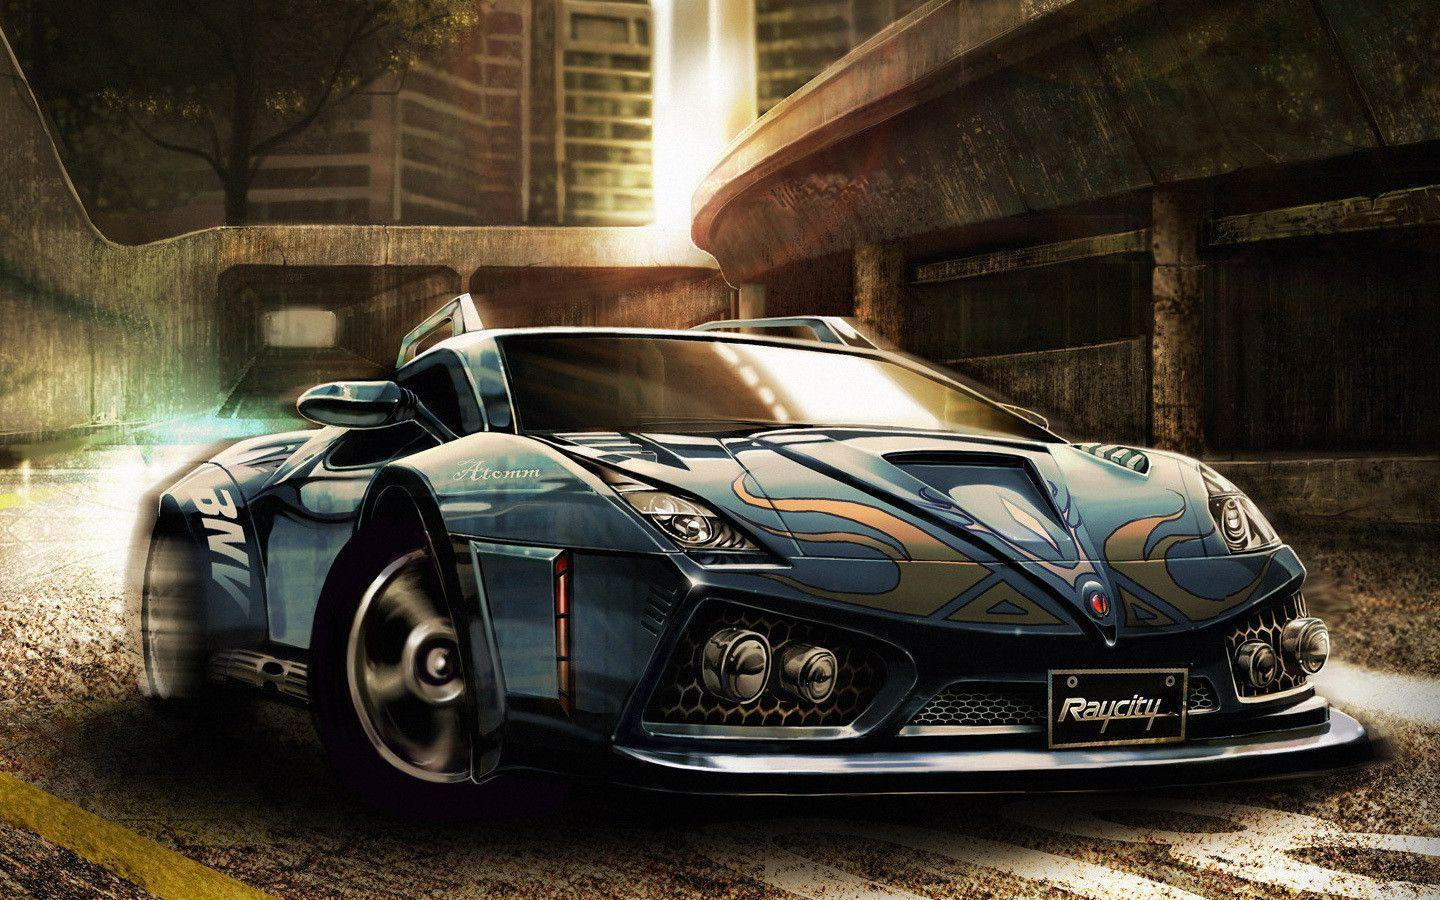 Cool Hd Car Wallpapers Hq Desktop 16 HD